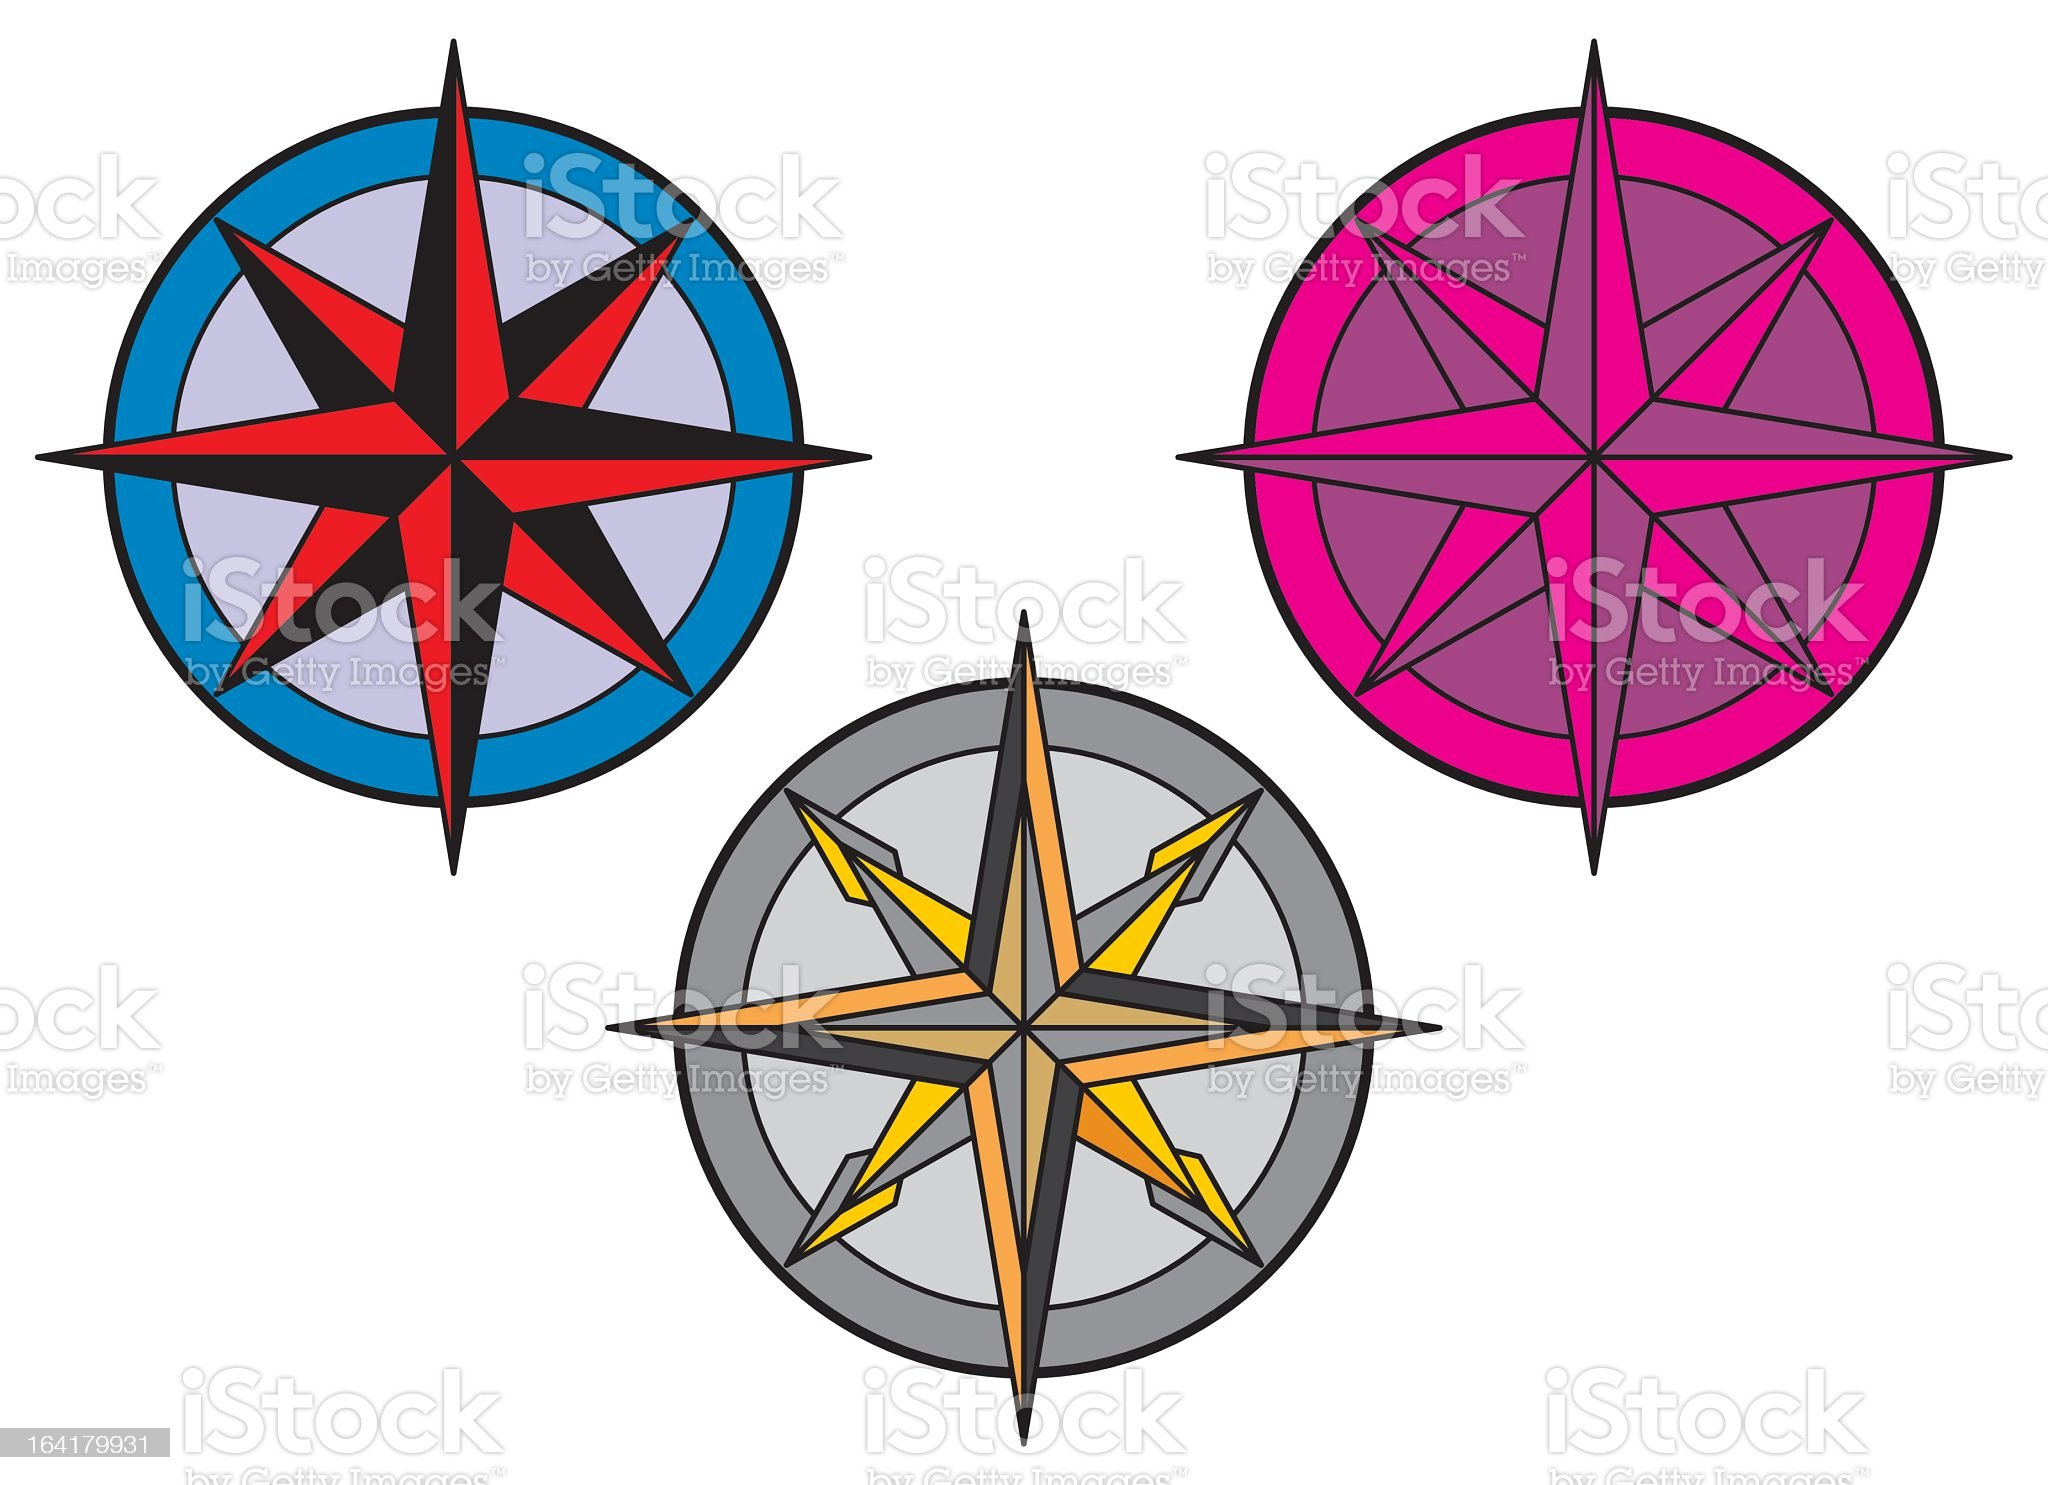 Different colored compass designs royalty-free stock vector art